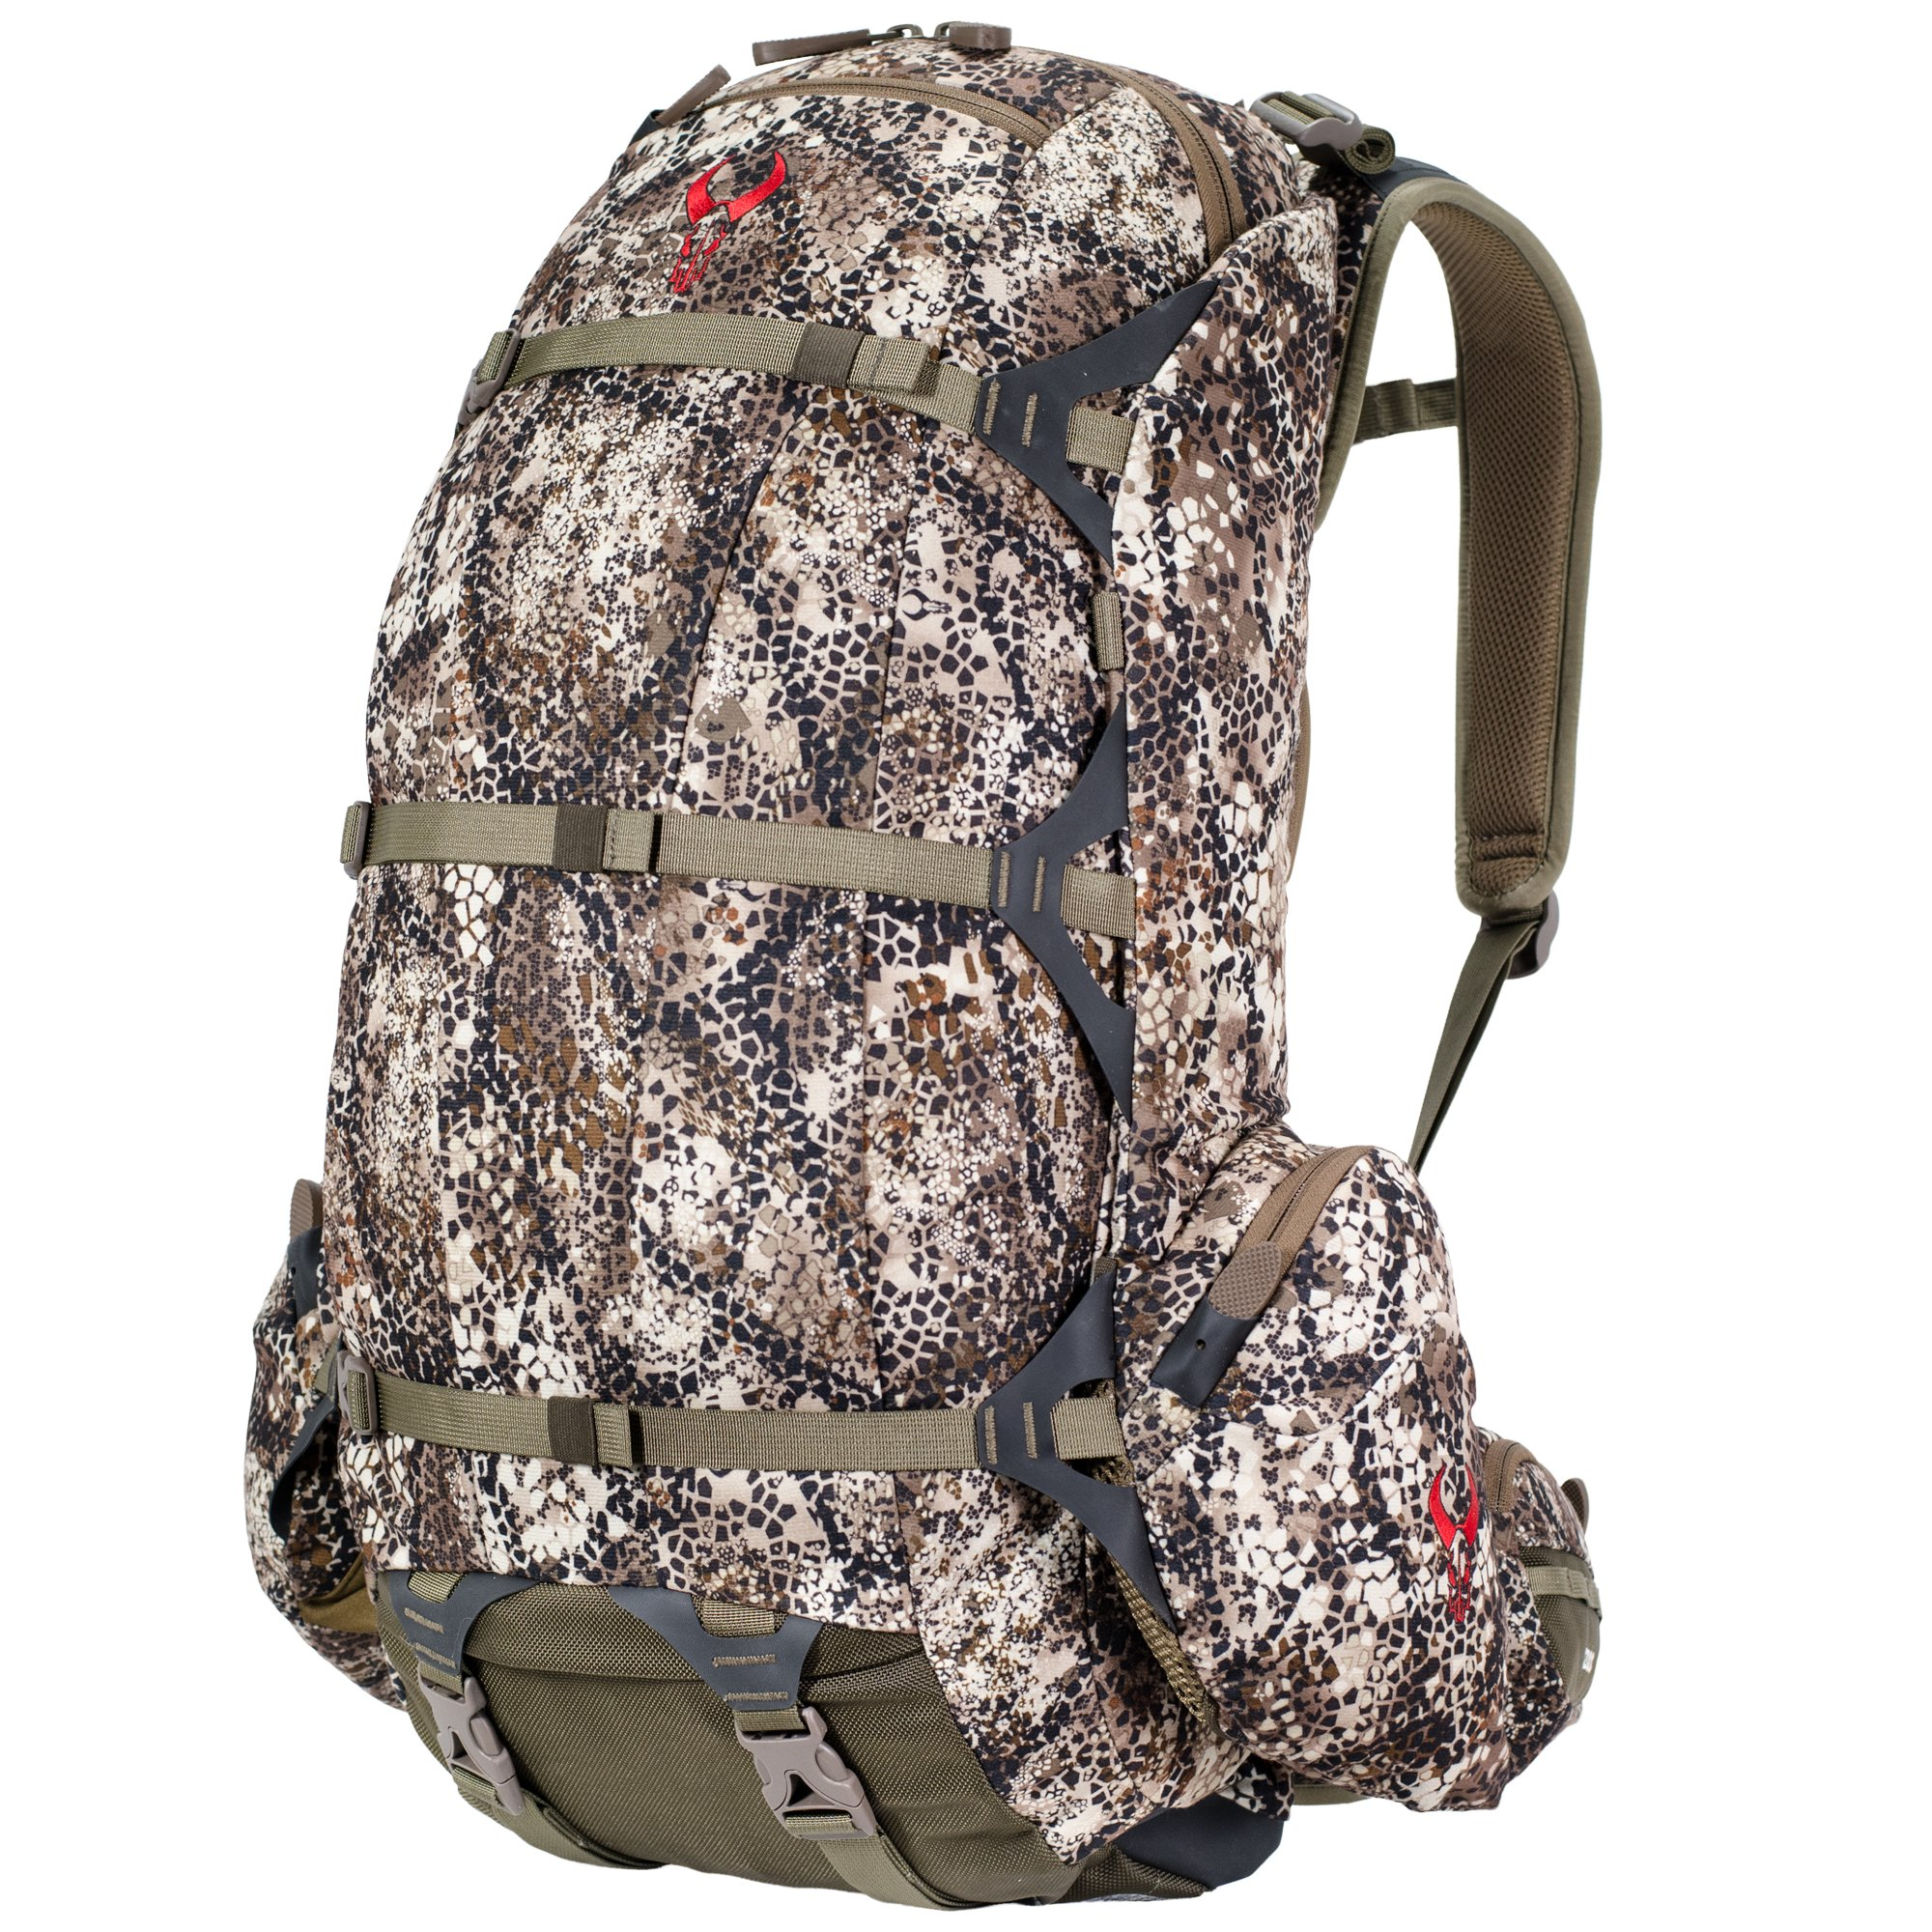 Badlands 2200 Camouflage Hunting Pack and Meat Hauler - Bow, Rifle, and Pistol Compatible, Approach FX by Badlands